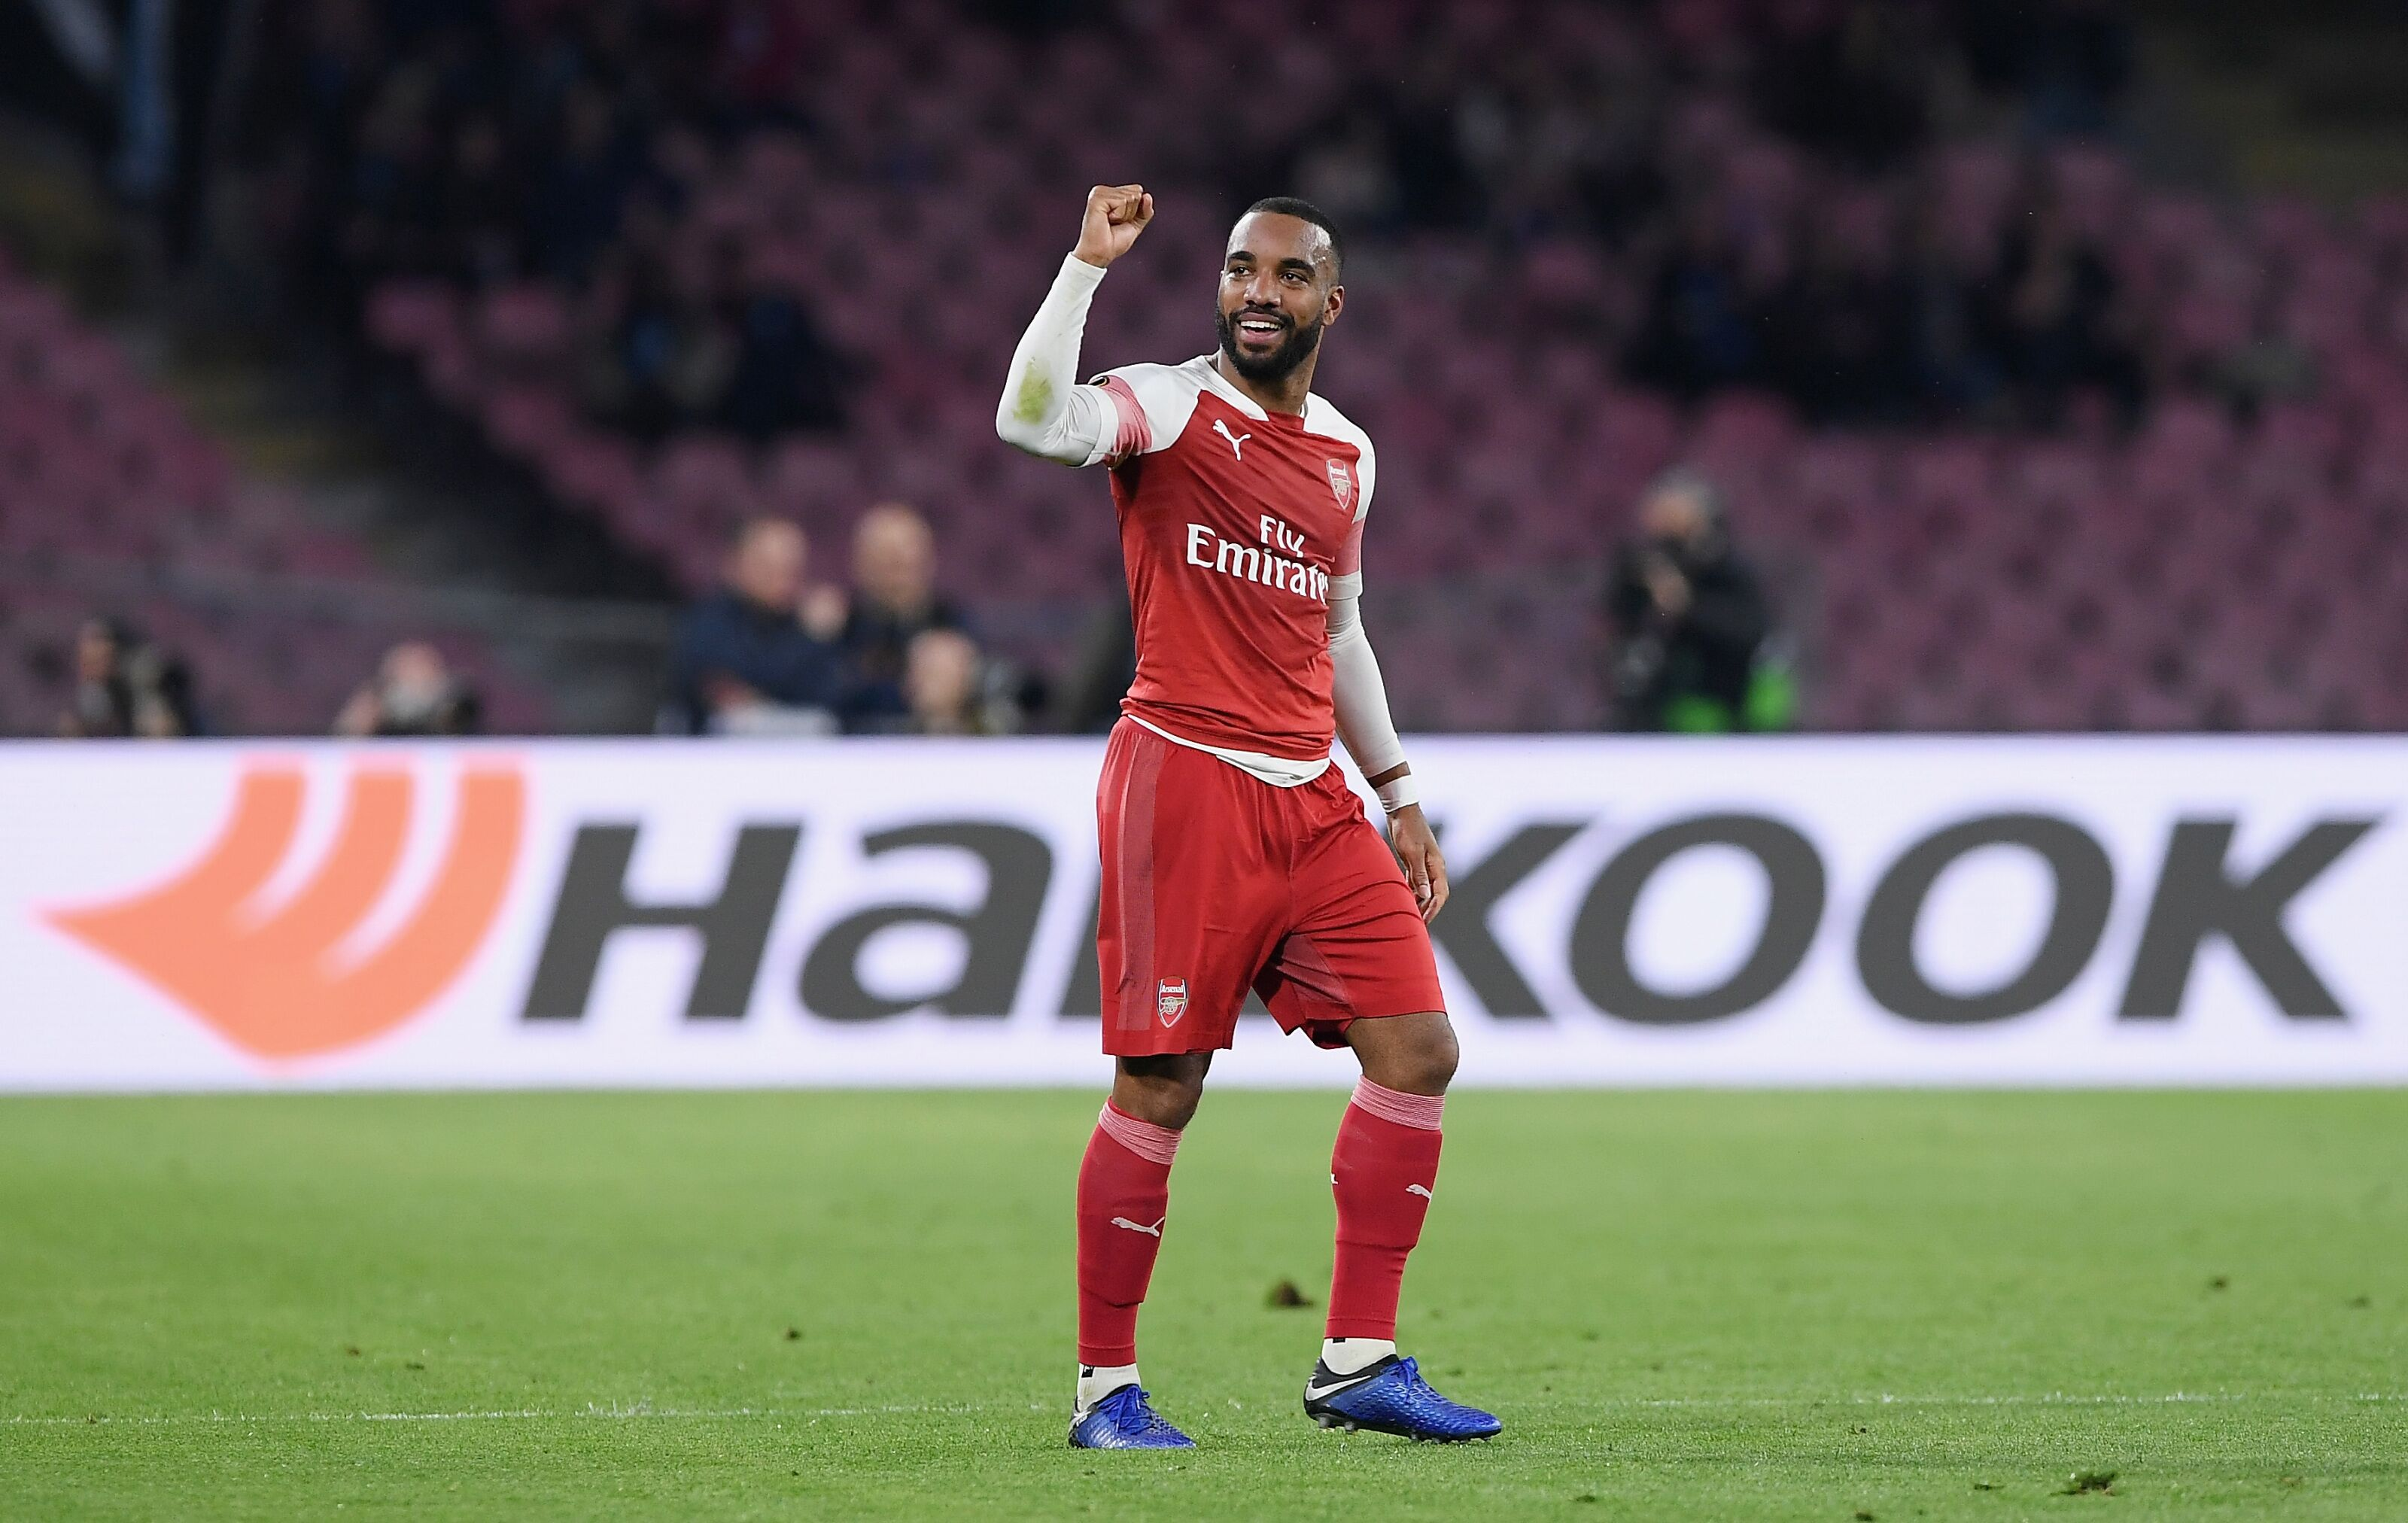 Arsenal: Alexandre Lacazette needs this to be a two-way street